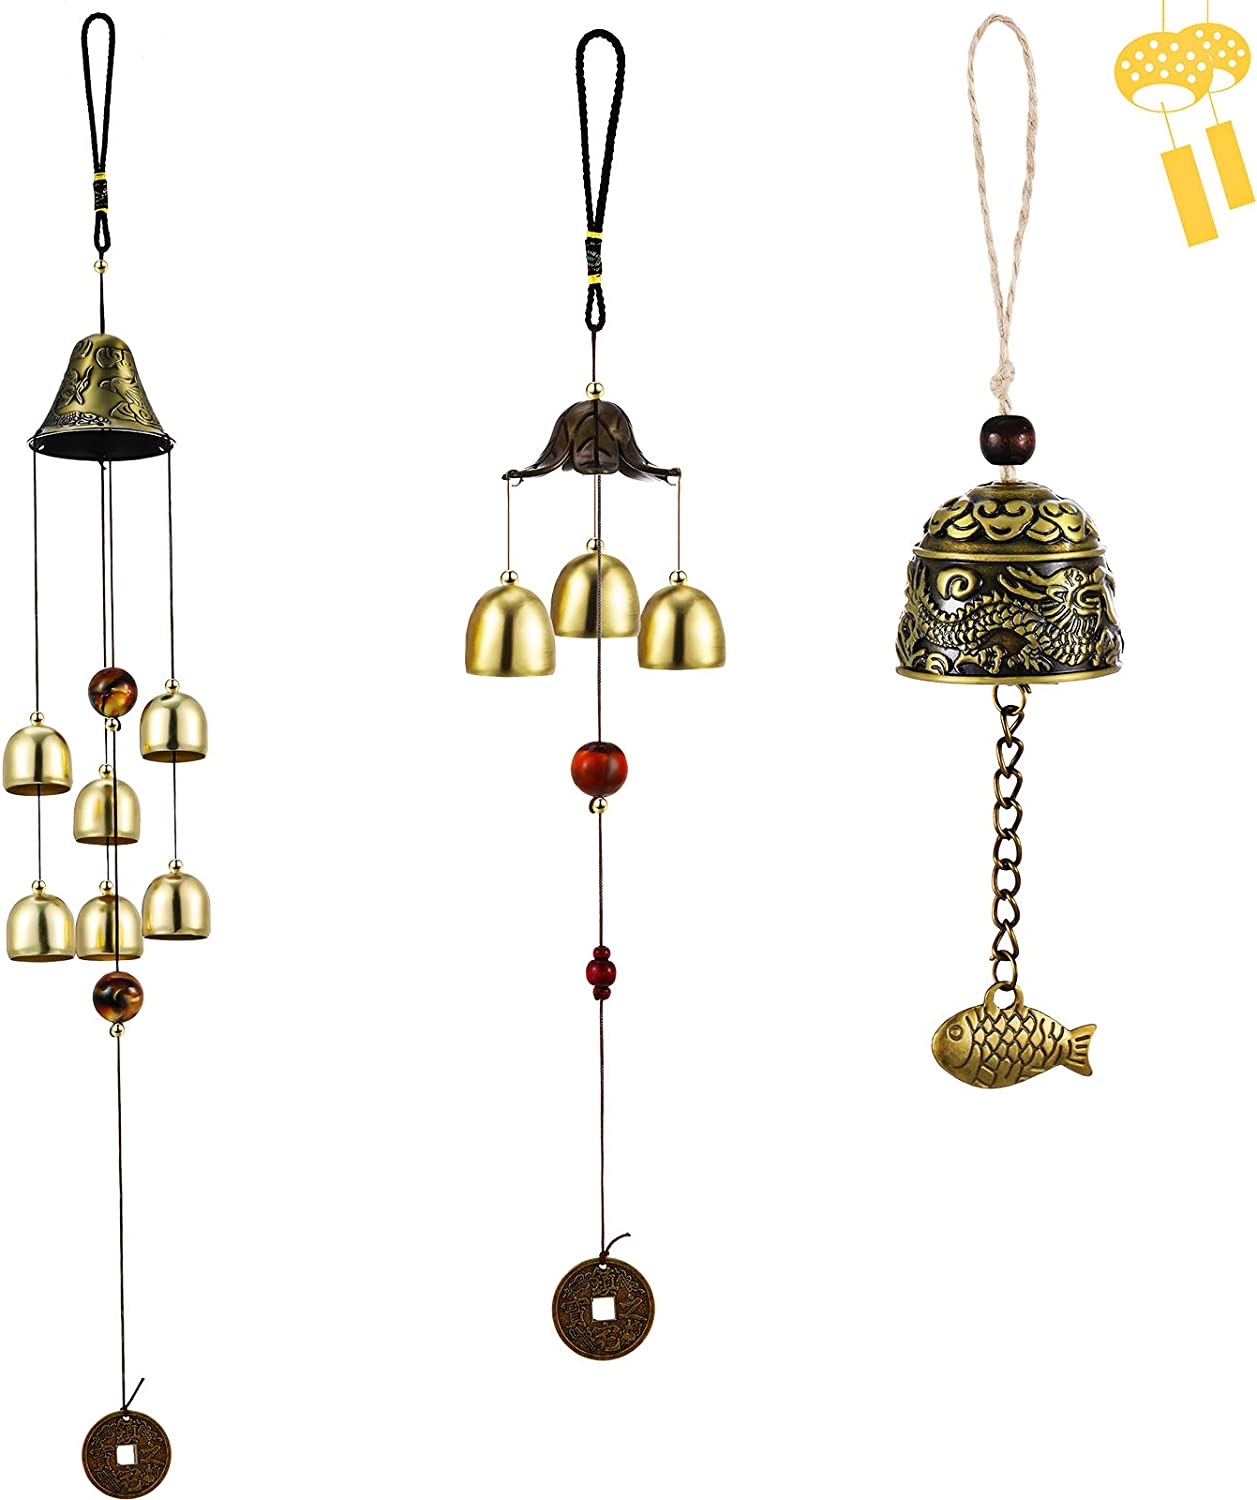 3 Pieces Feng Shui Wind Bell Lucky Wind Chimes Chinese Metal Bell Vintage Dragon and Fish Feng Shui Hanging Chime for Good Luck, Safe, Home Garden Patio Hanging Decoration, 3 Bells, 6 Bells